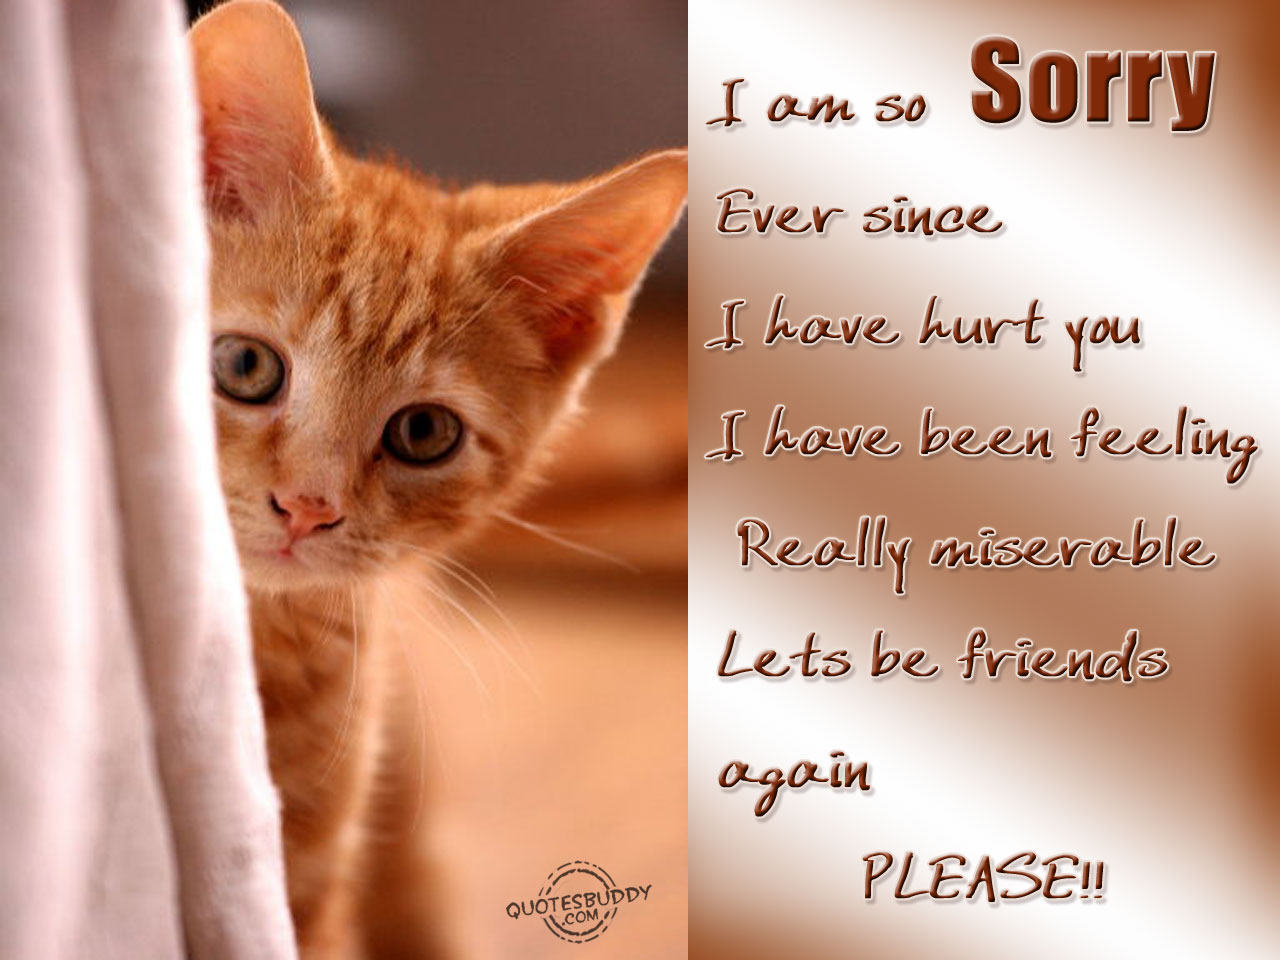 Have You Ever Been Sorry To Hear From A Friend You Were Glad To Hear From